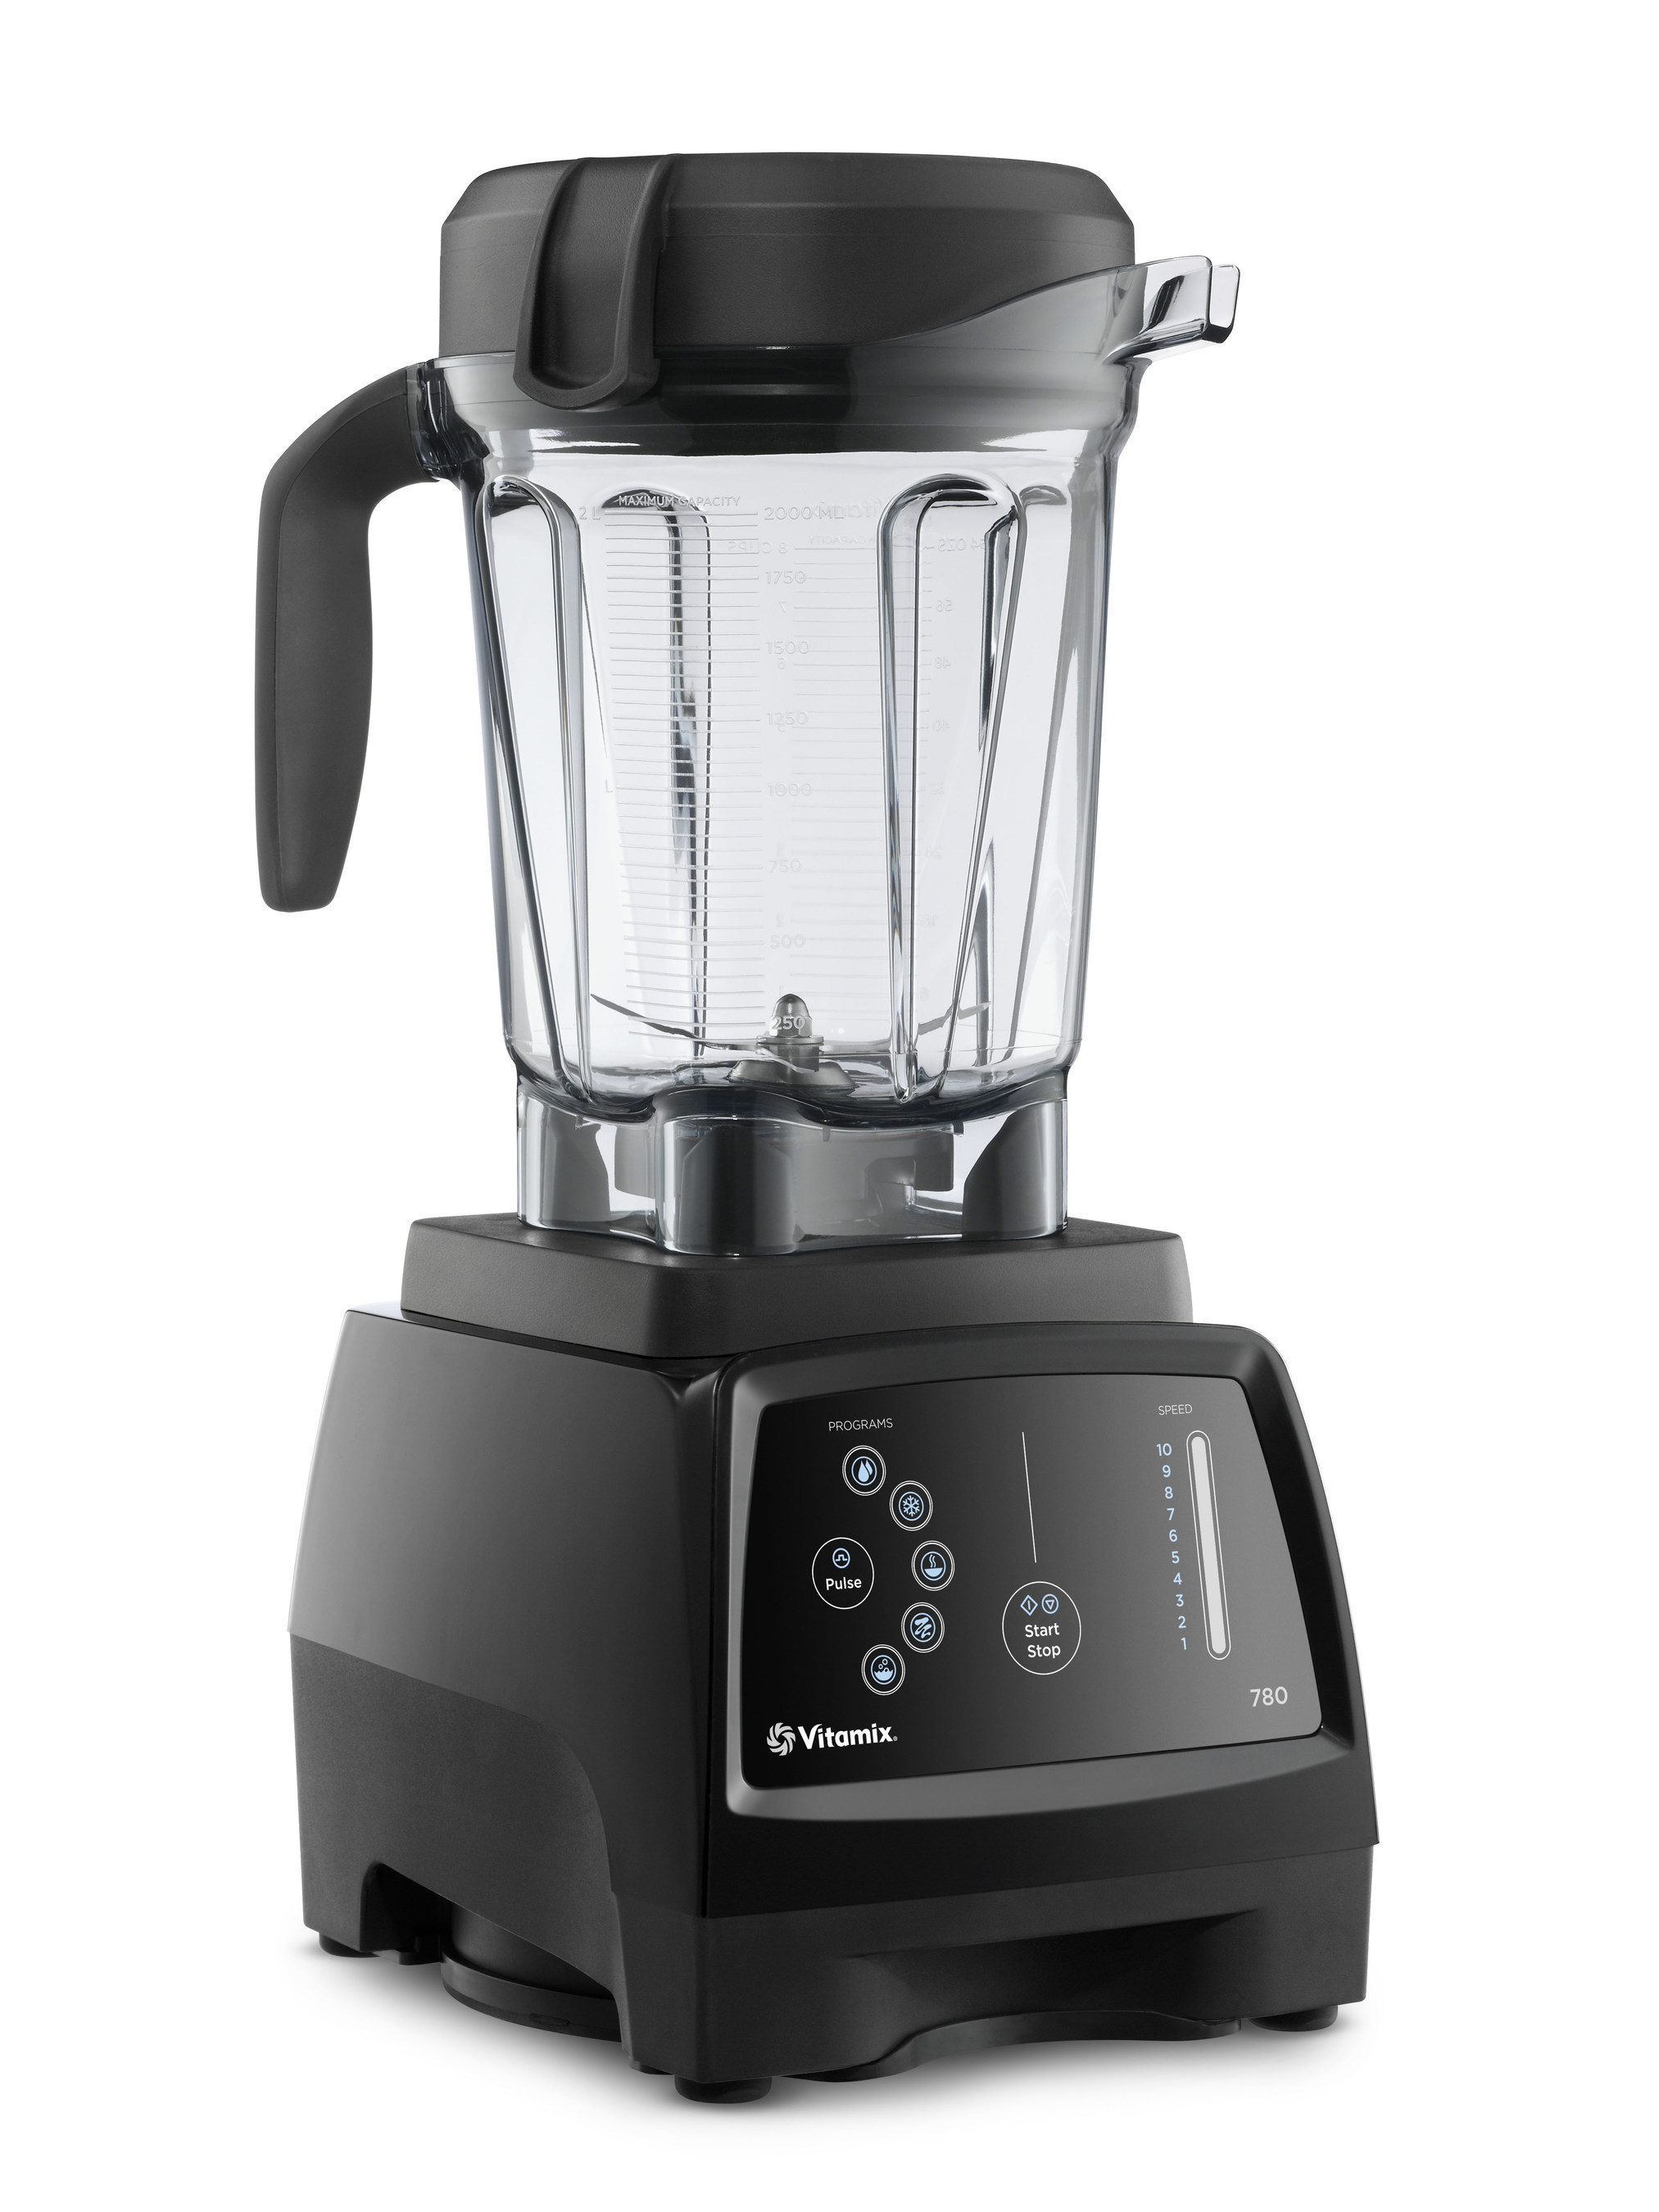 The Vitamix 780: The First Touch Screen Blender From Vitamix Boasts Innovative And Intuitive Design